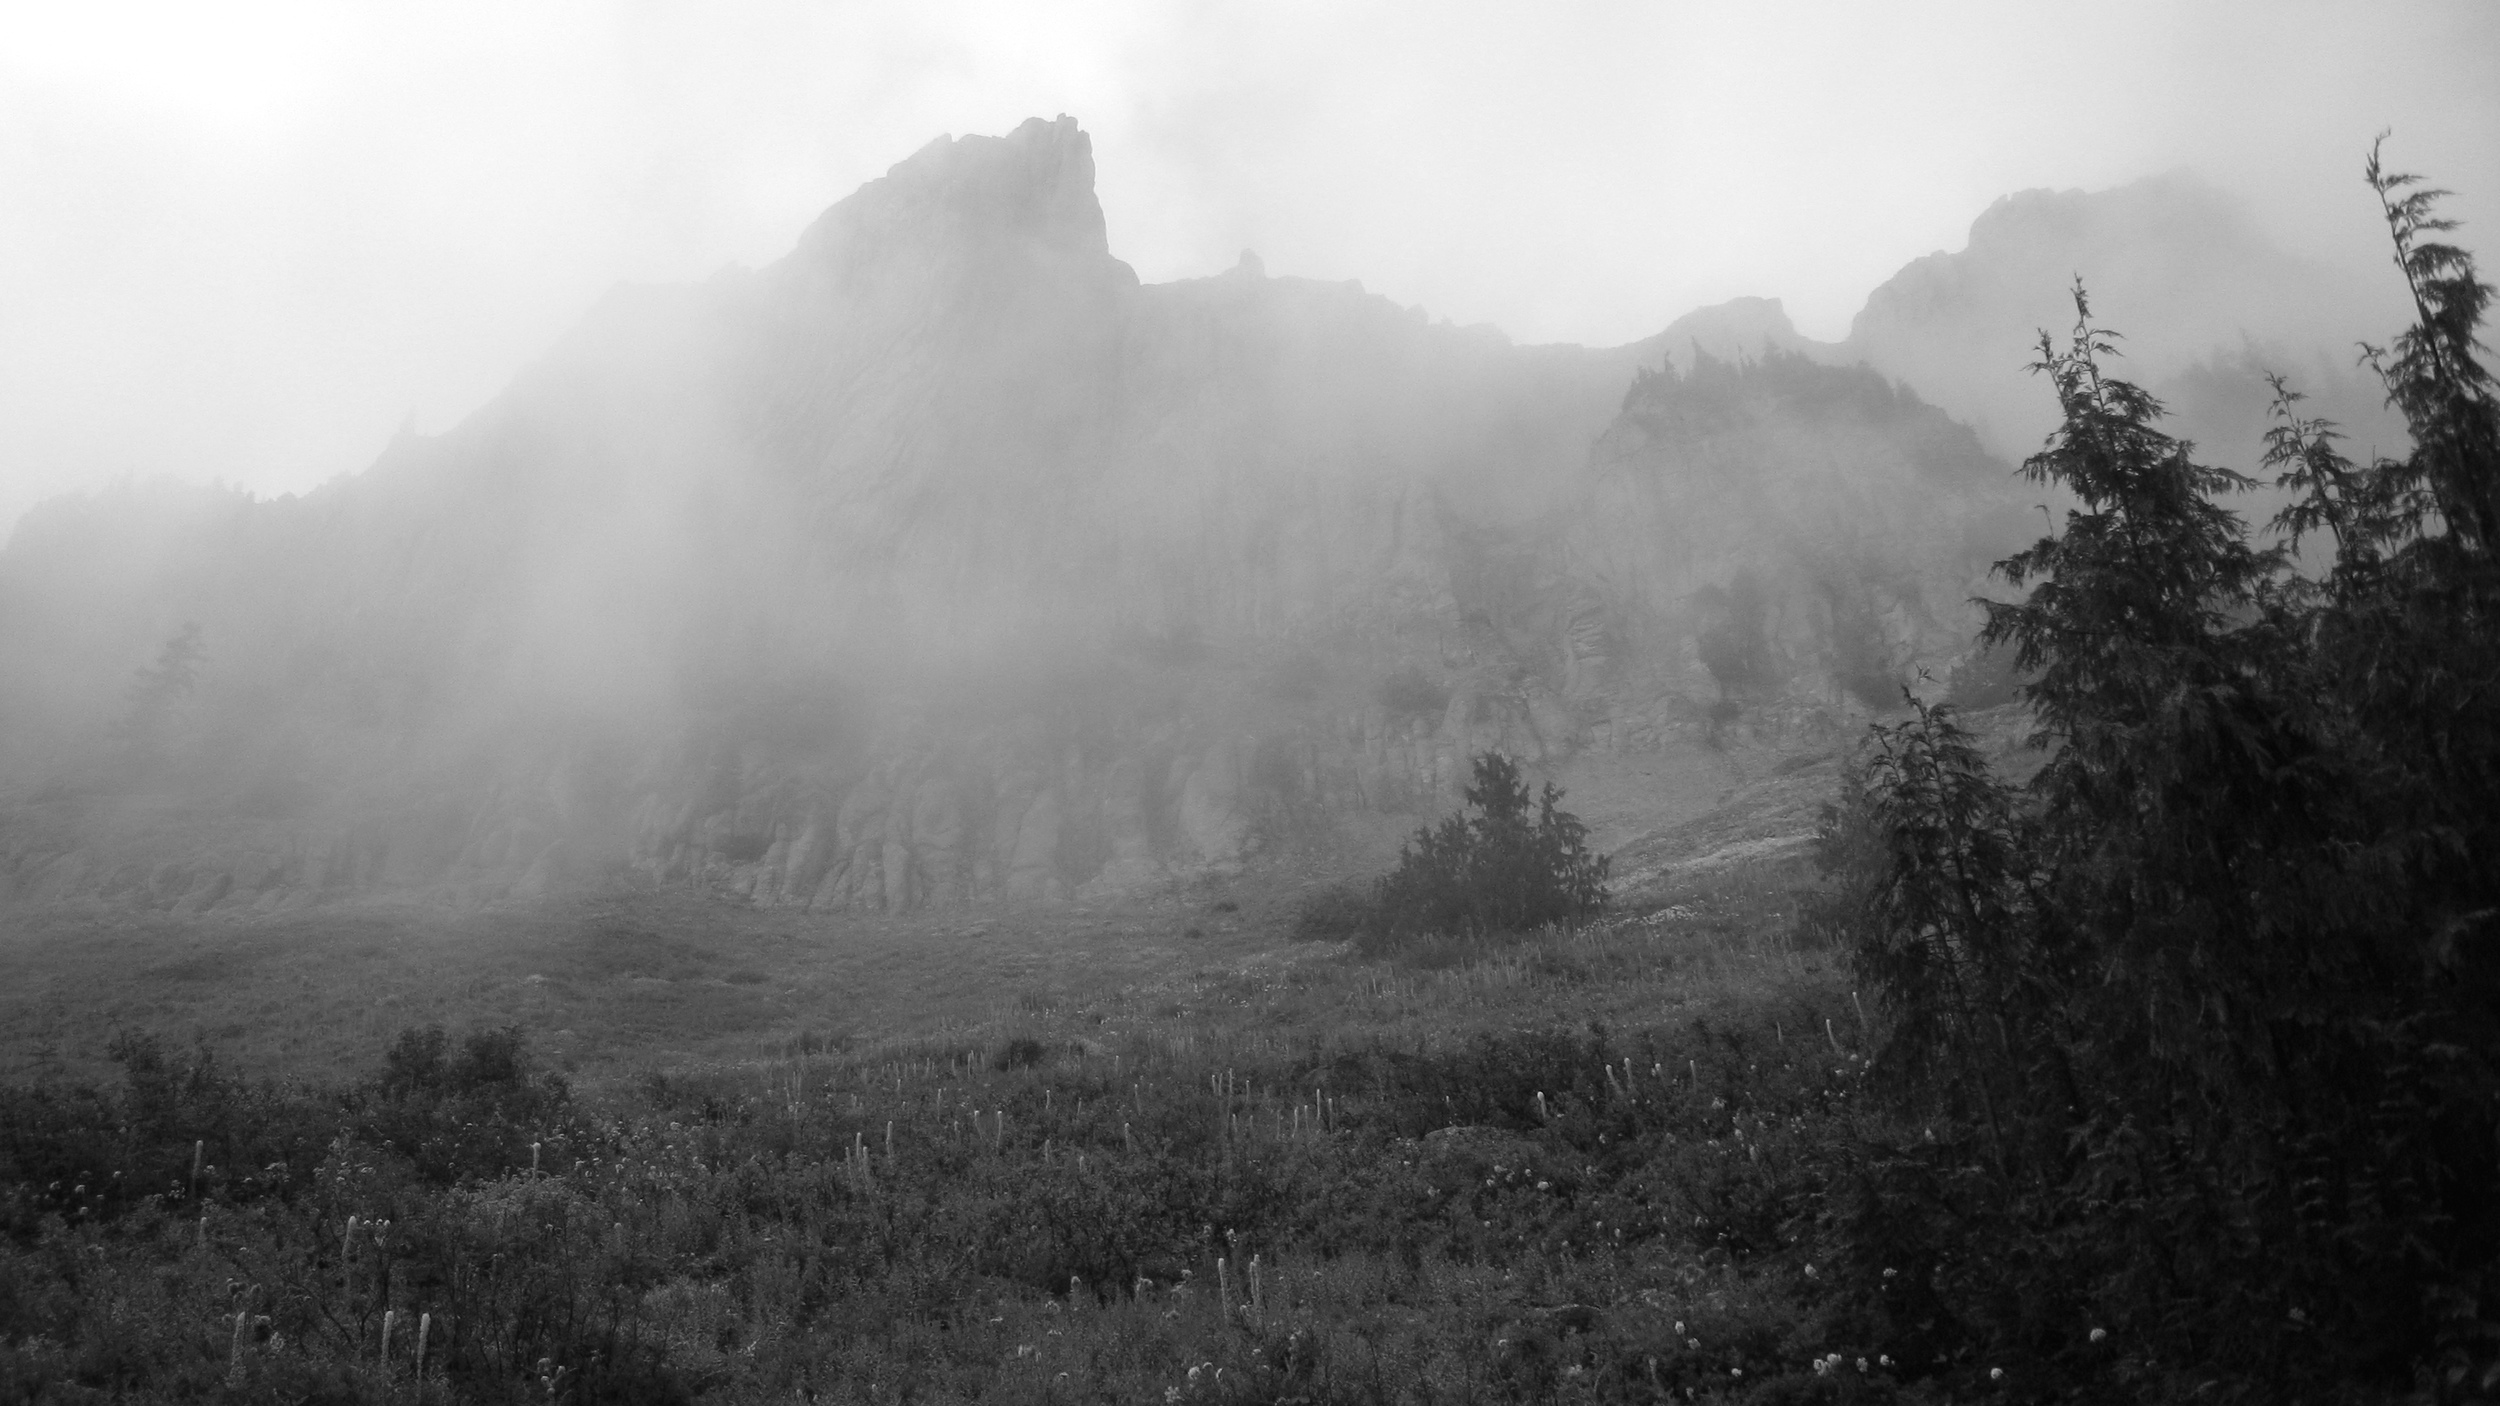 Yellowstone Cliffs in the mist